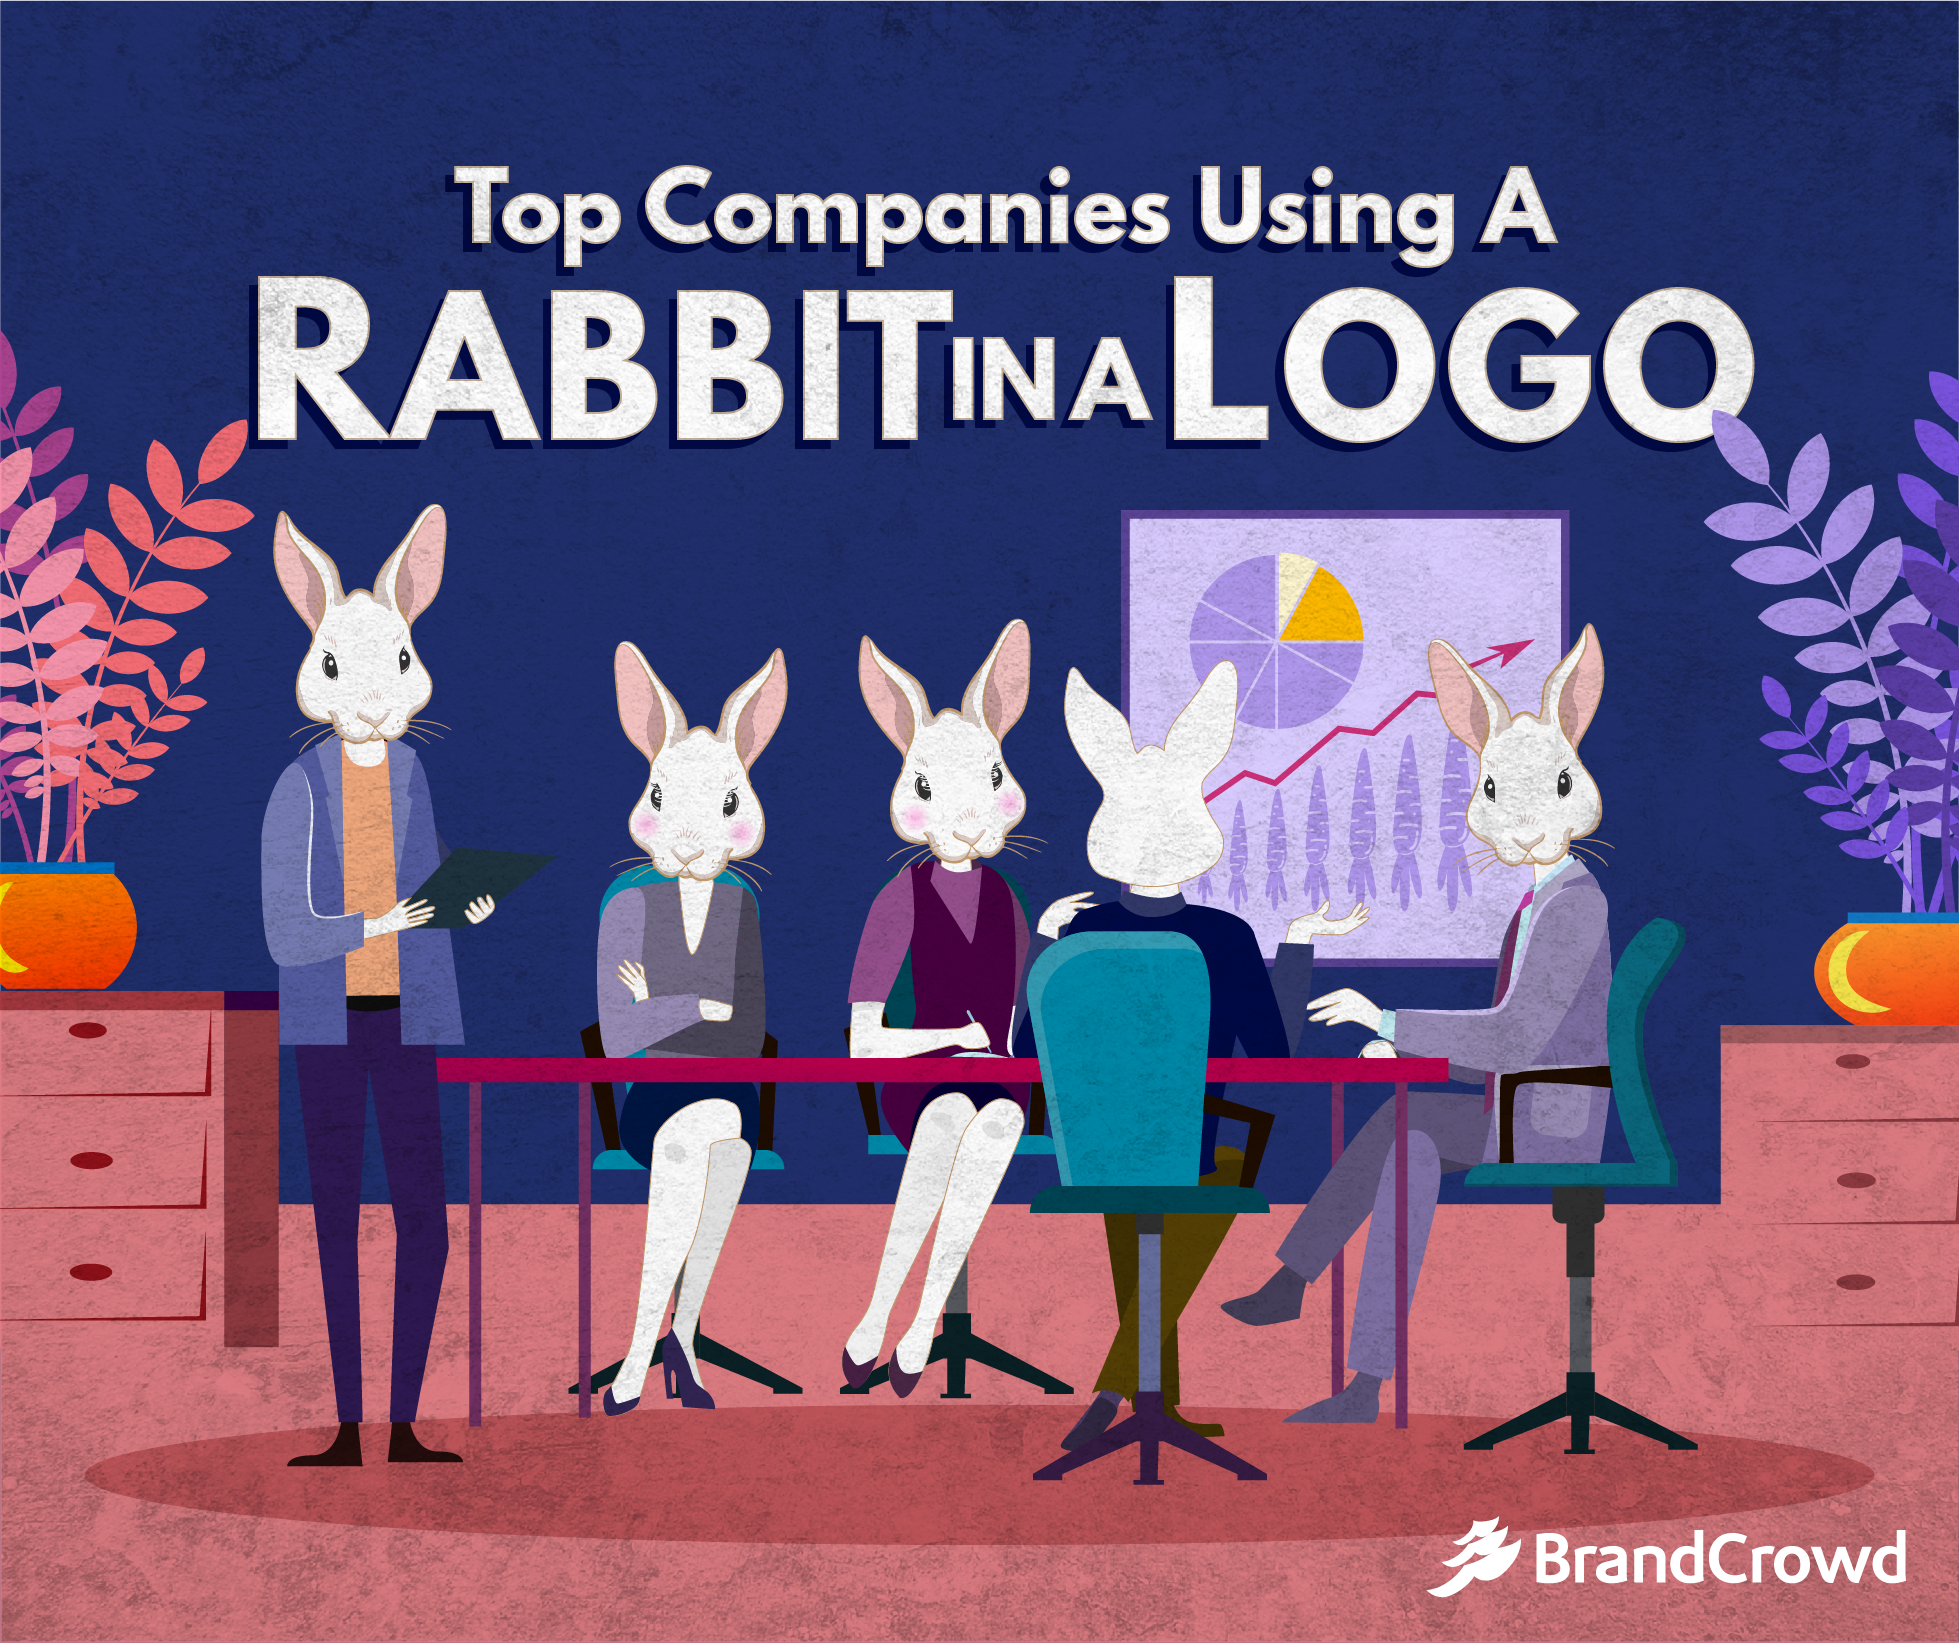 Top Companies Using a Rabbit in a Logo